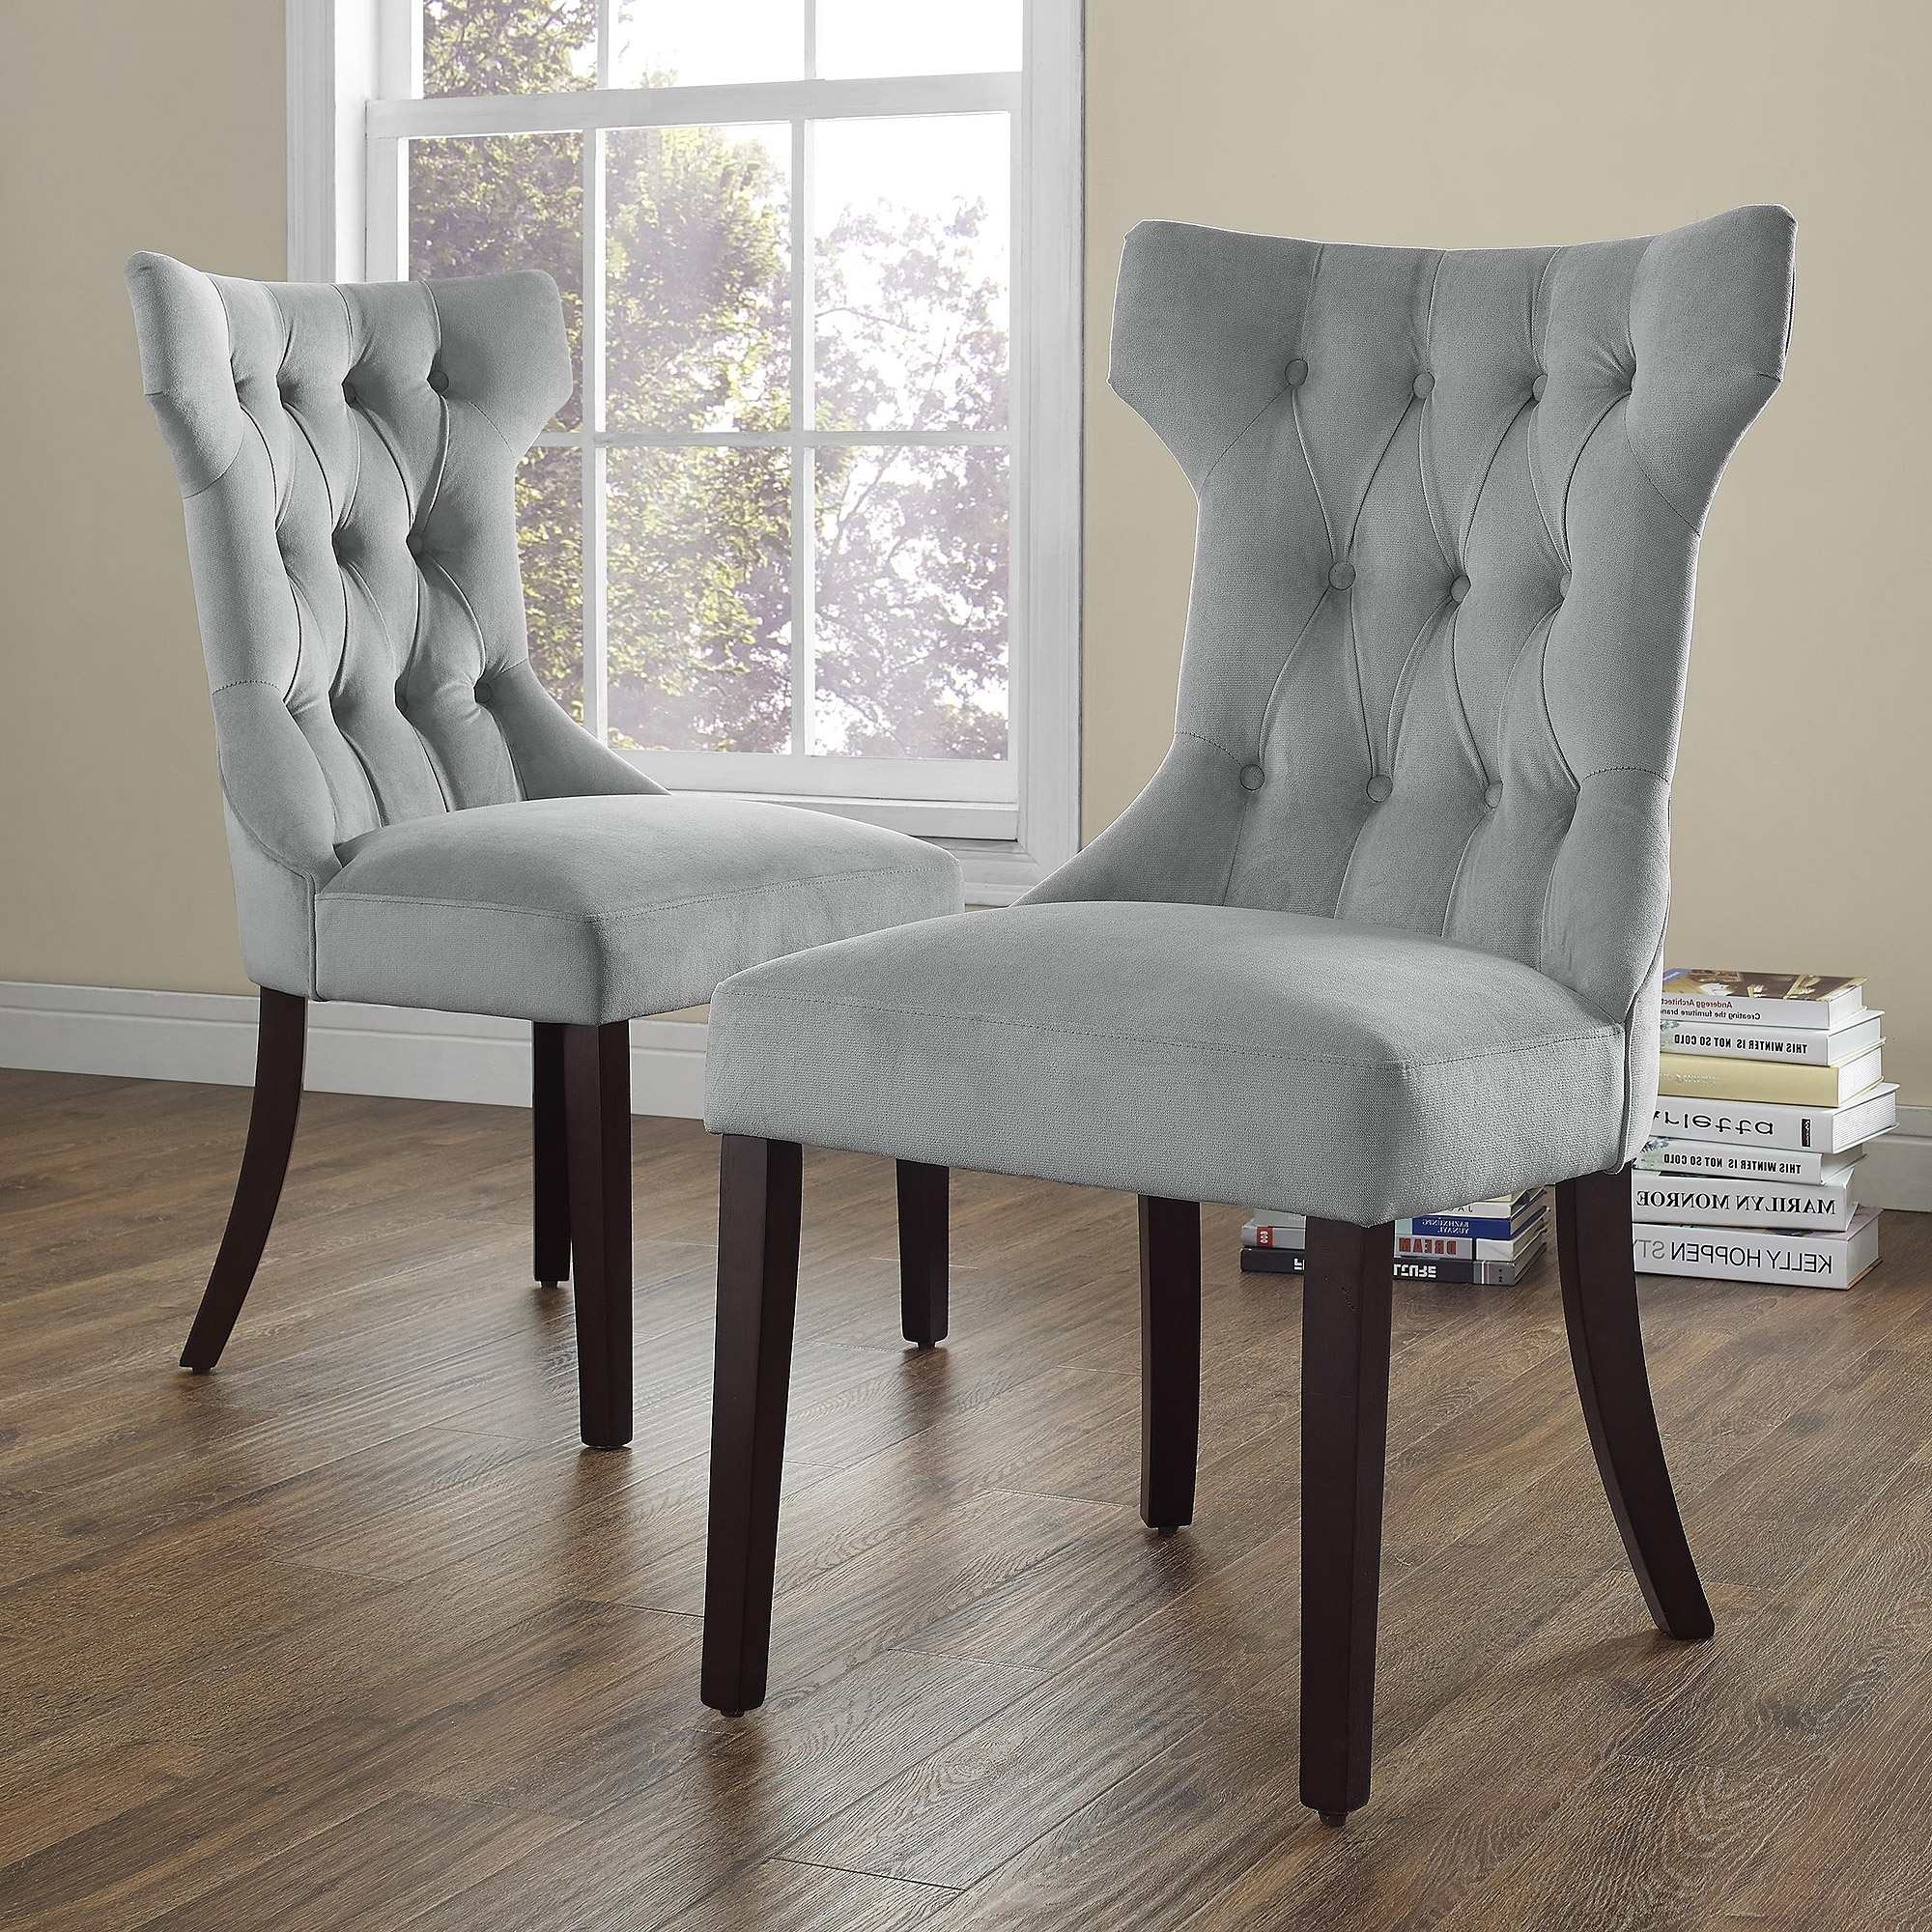 Dining Room Chairs Within Most Recent Dorel Living Clairborne Tufted Upholestered Dining Chair, Set Of 2 (Gallery 2 of 25)